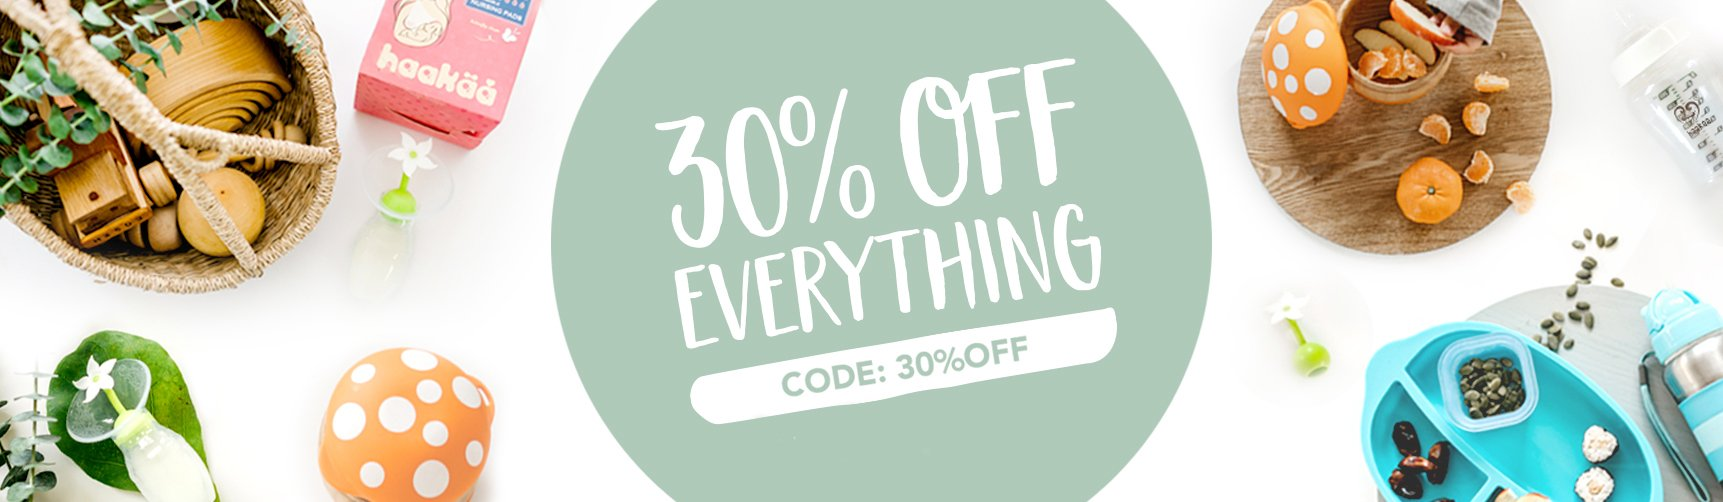 Get 30% off Everything in Store